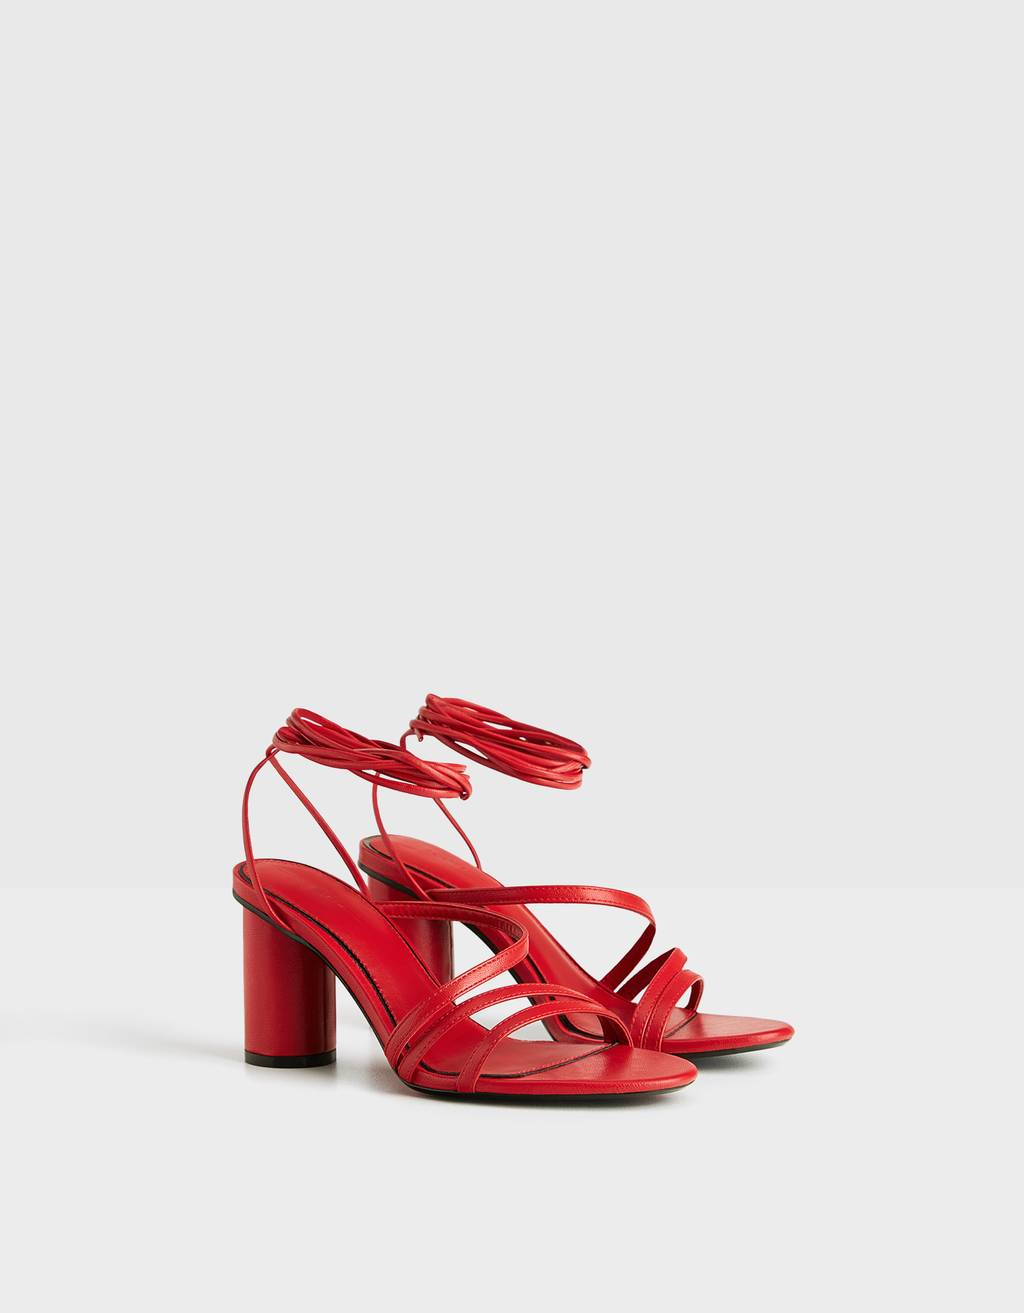 Block heel sandals with straps and tie detail